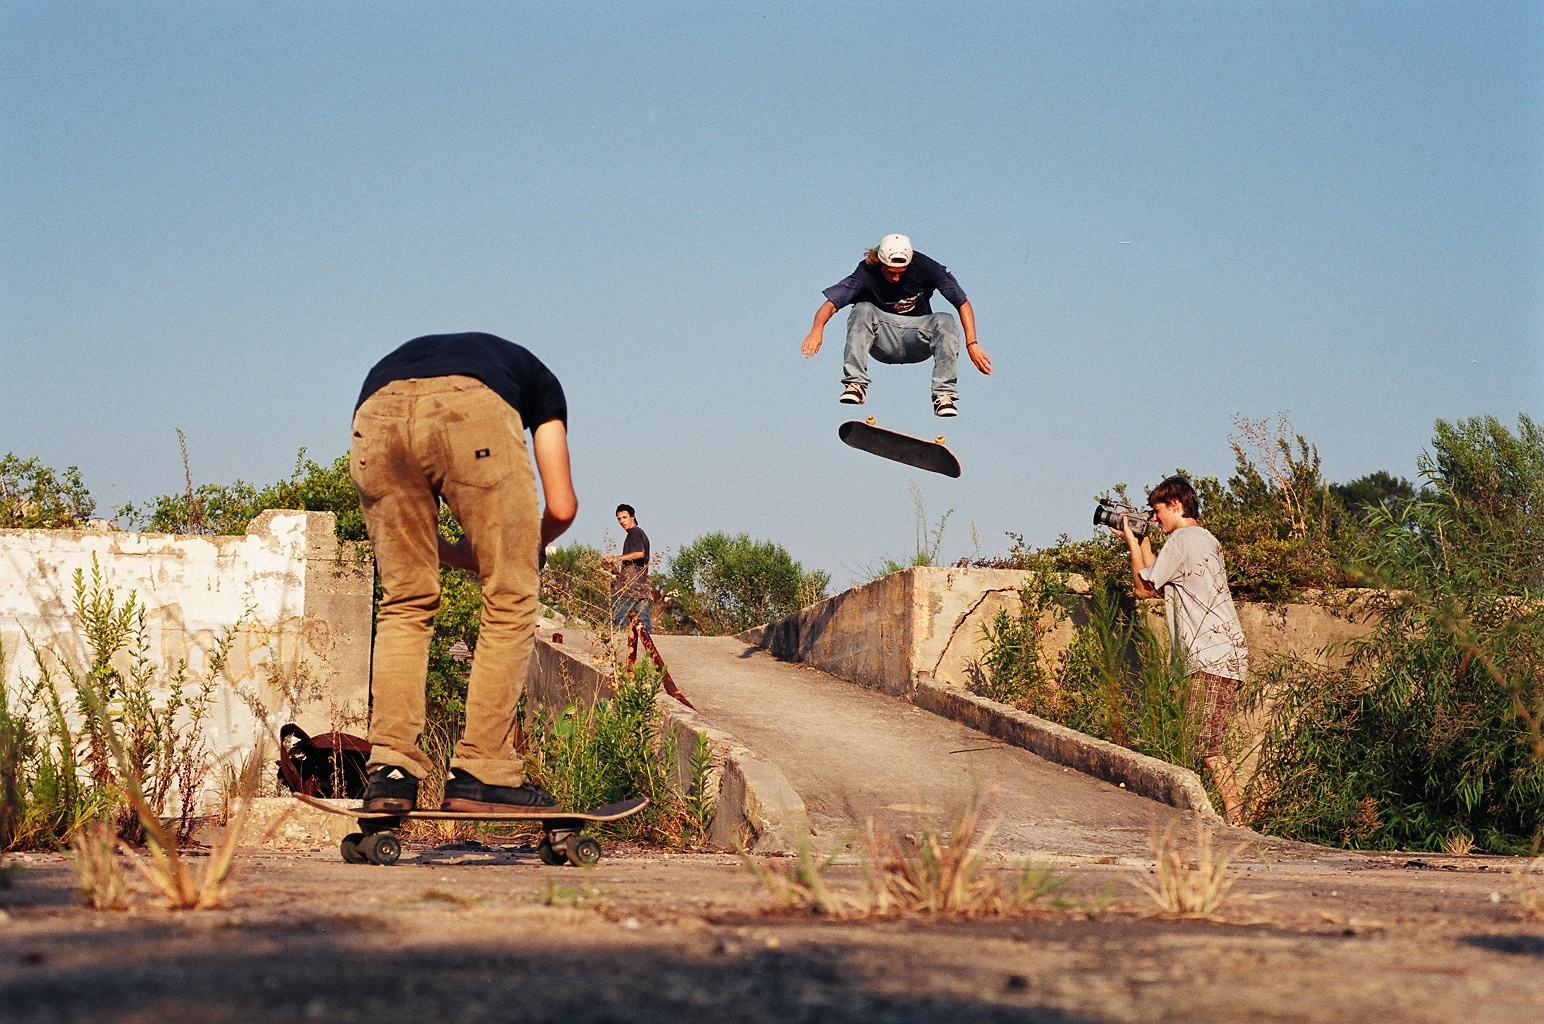 Wells - Switch Frontside Flip